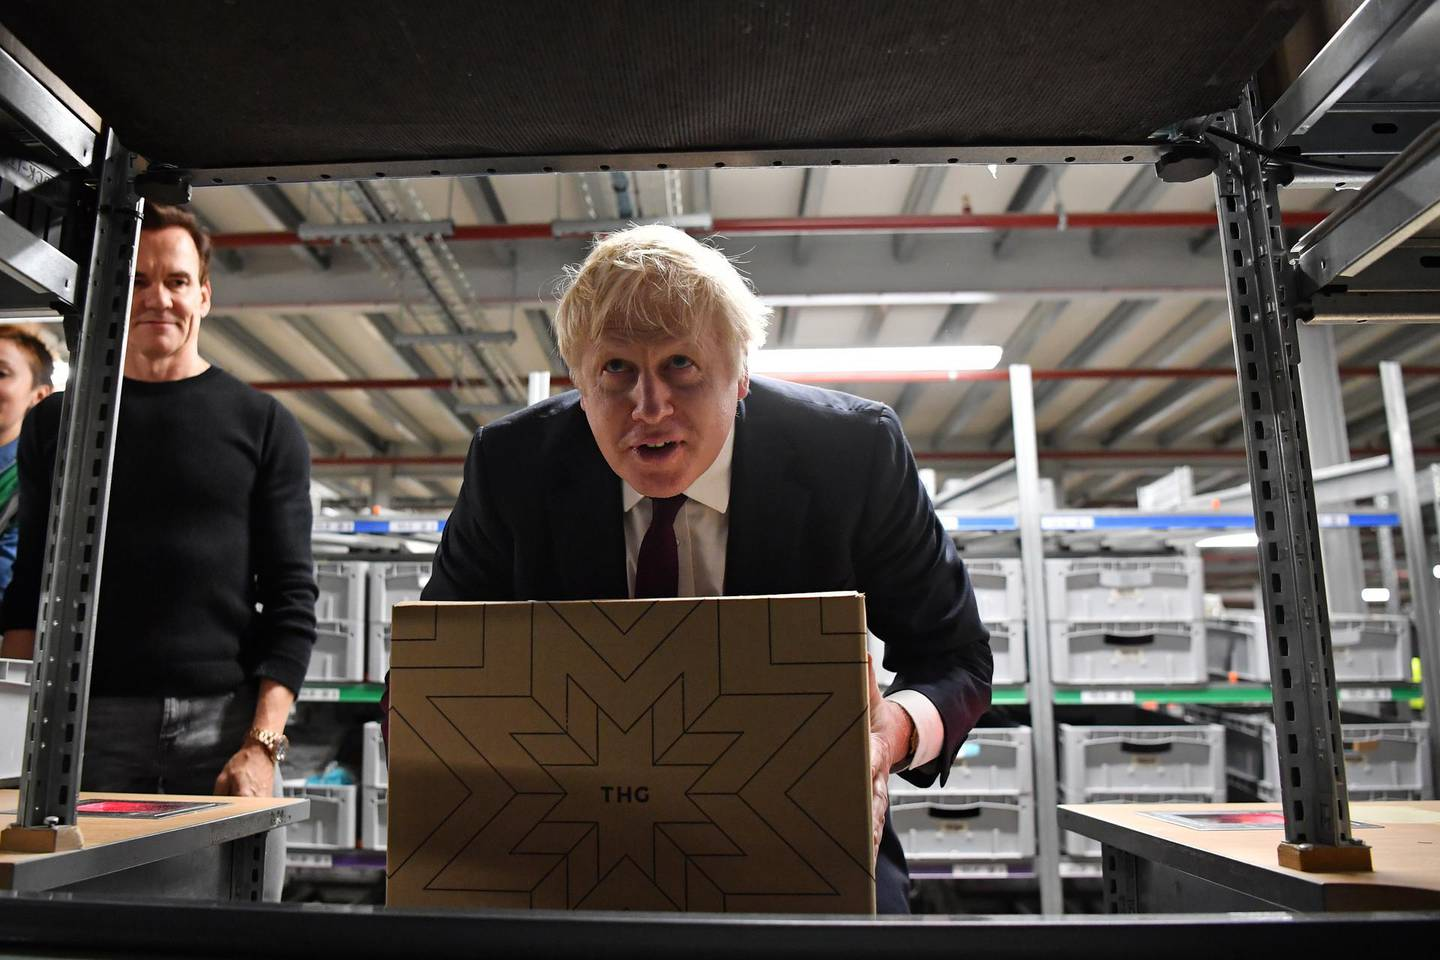 WARRINGTON, ENGLAND - DECEMBER 10: Britain's Prime Minister and Conservative party leader Boris Johnson (C) moves a box in a fulfillment centre for The Hut Group (THG) during a general election campaign event on December 10, 2019 in Warrington, United Kingdom. The U.K will go to the polls in a general election on December 12. (Photo by Ben Stansall - WPA Pool / Getty Images)